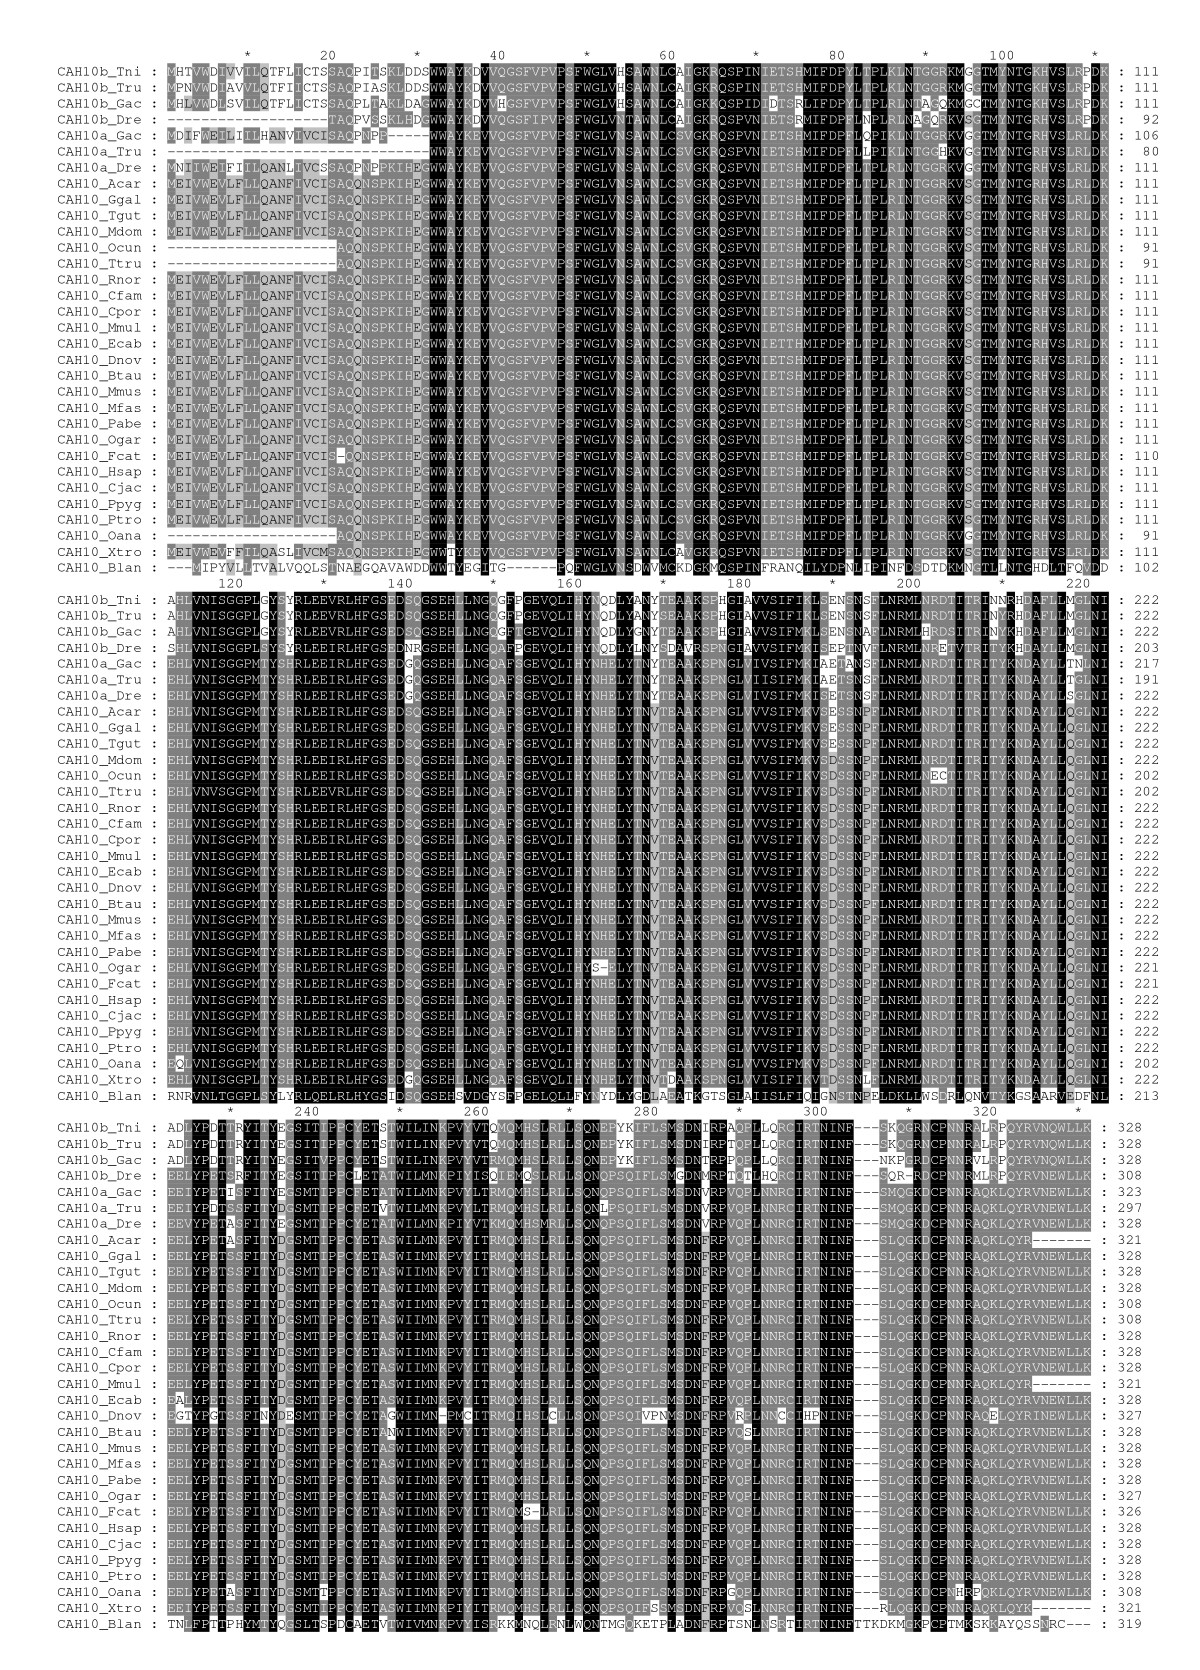 http://static-content.springer.com/image/art%3A10.1186%2F1471-2199-11-25/MediaObjects/12867_2009_Article_506_Fig2_HTML.jpg